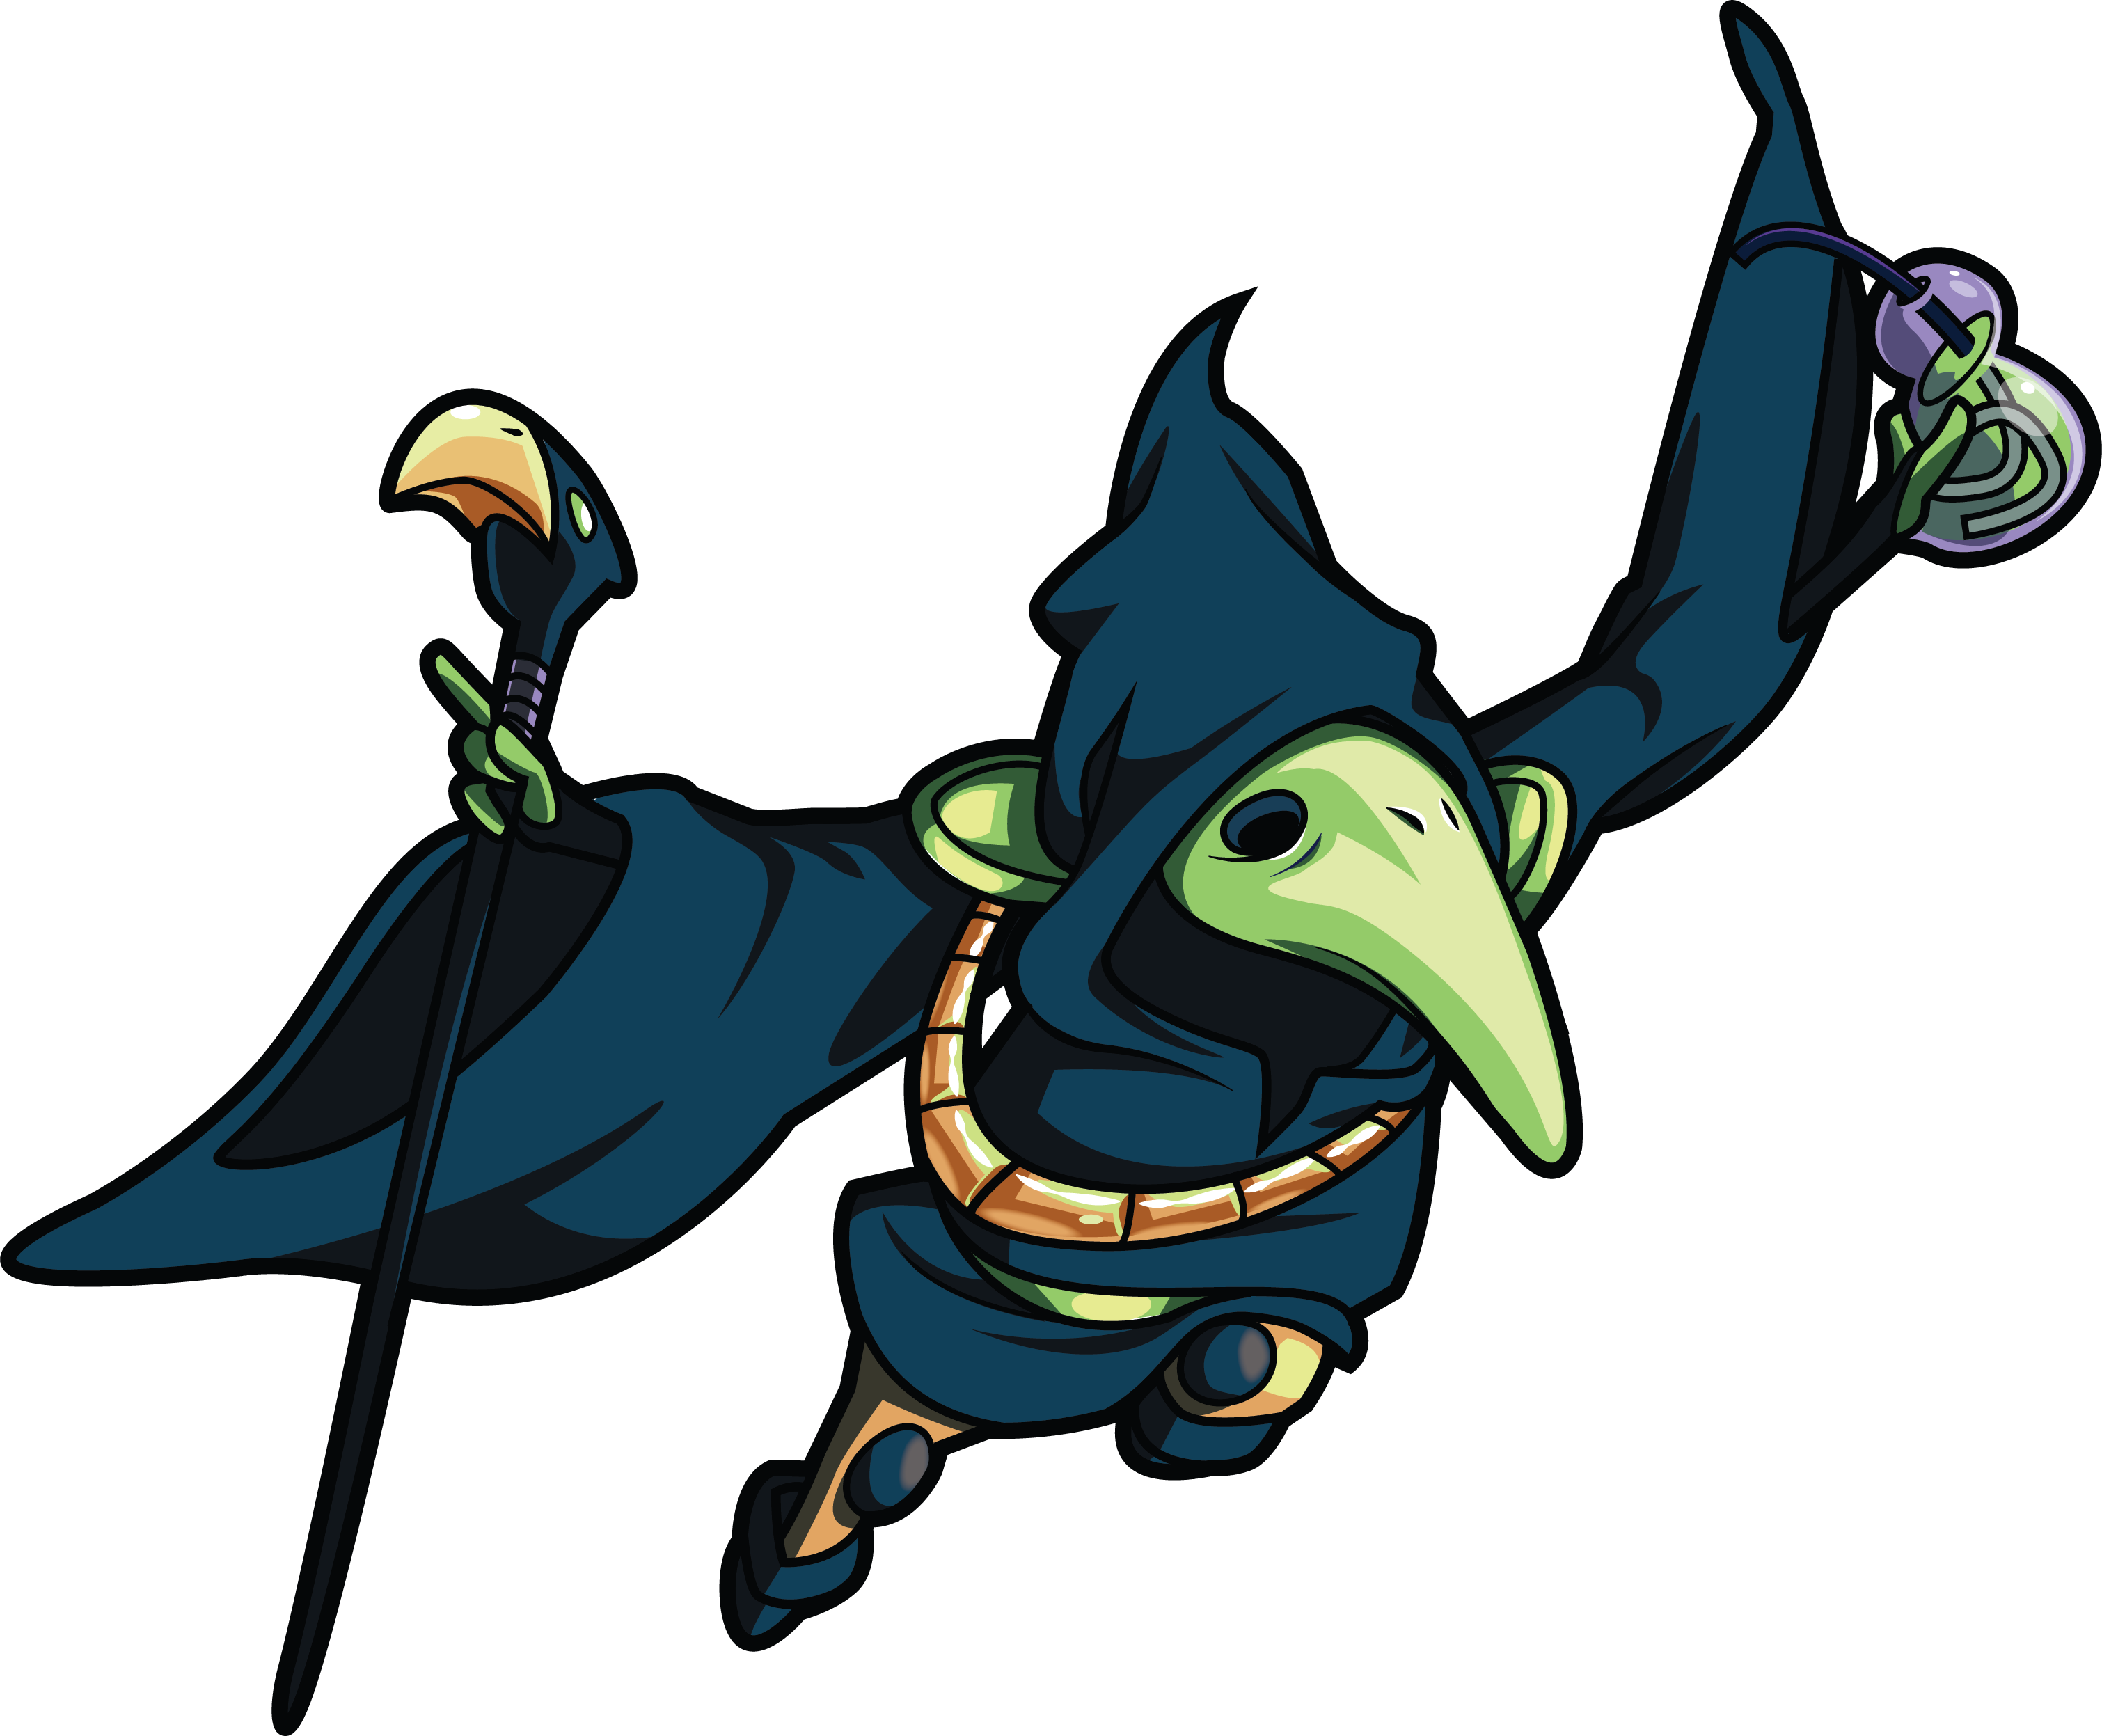 Knights clipart two knights. Plague knight mobility design